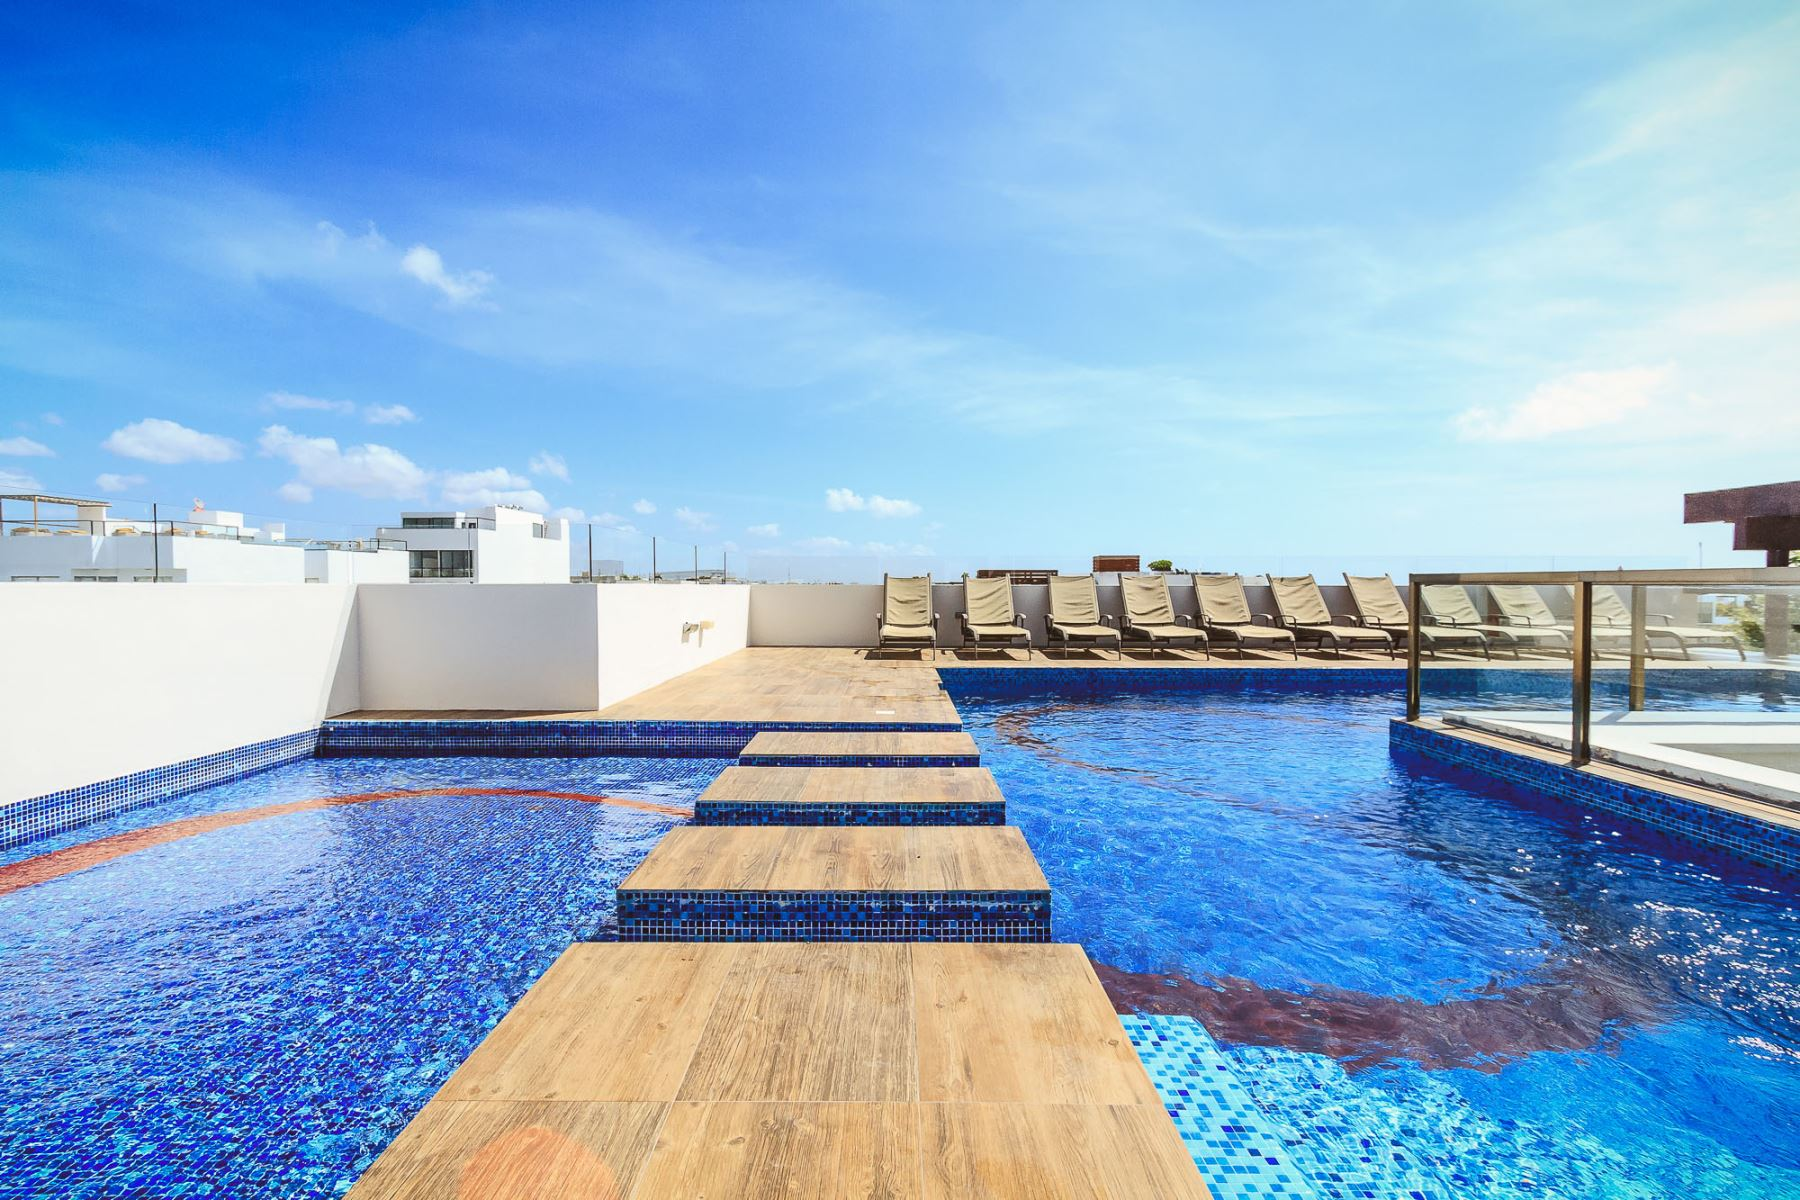 The Rooftop Pool Area